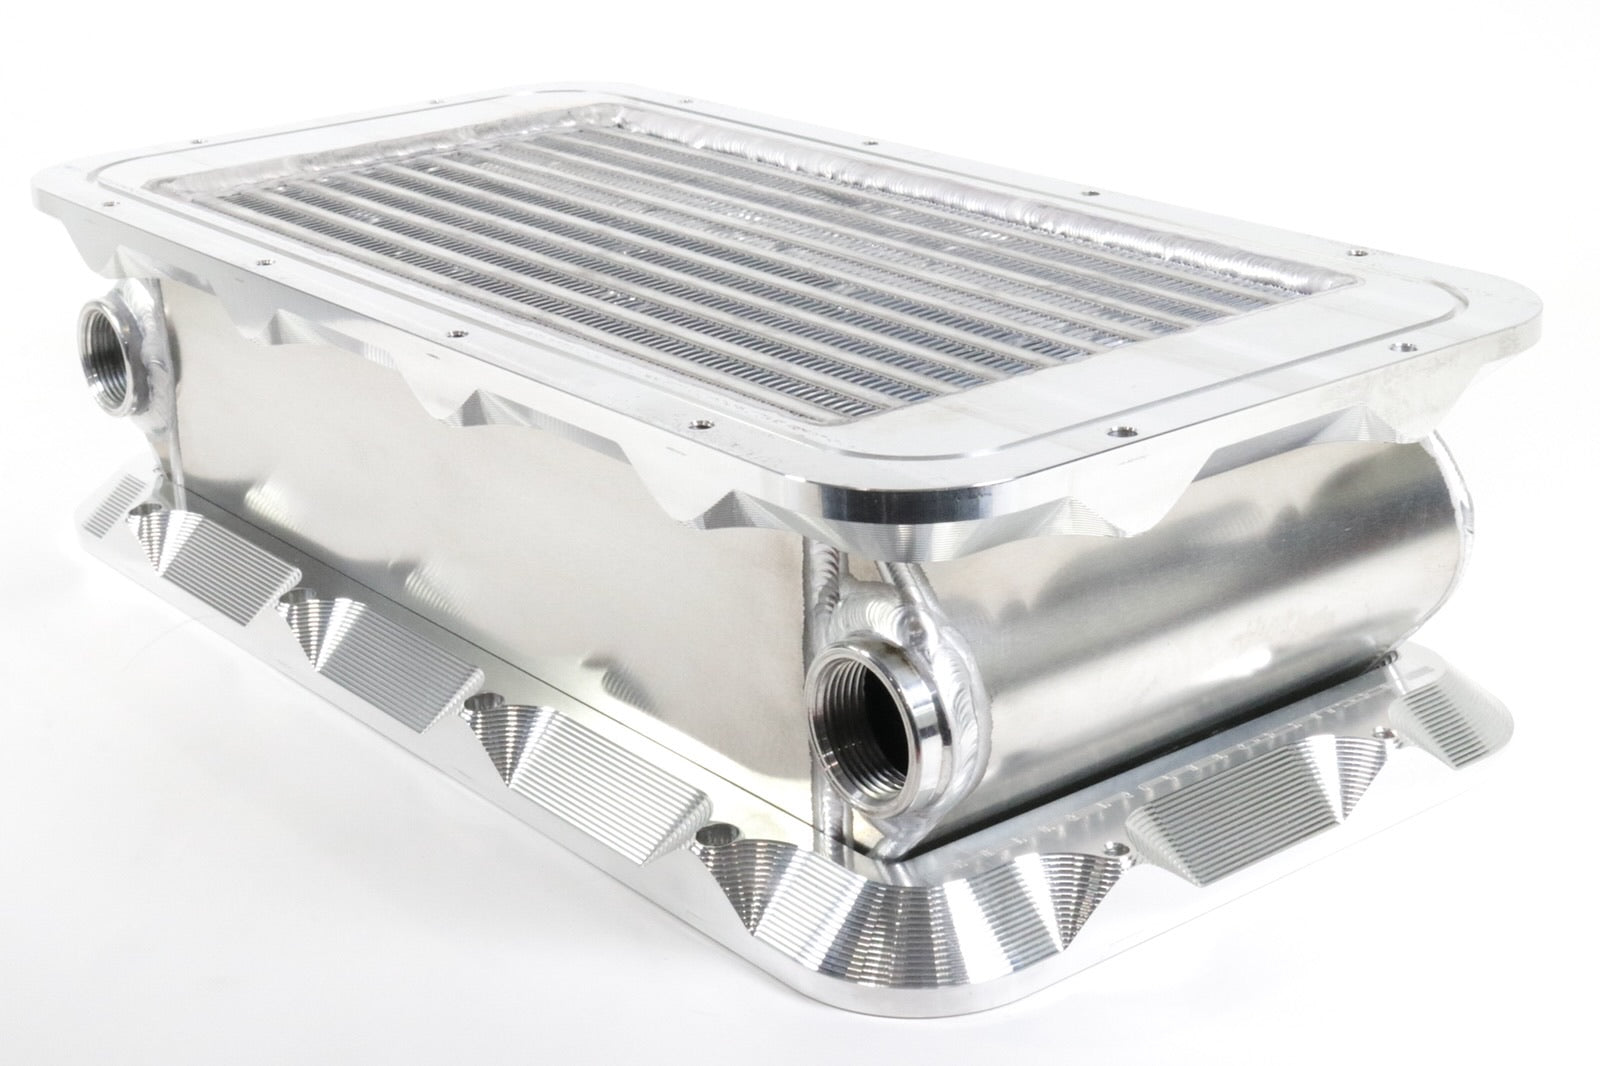 Shearer Fab HiRam Intercooler 1800hp SF06-02008-Shearer Fabrications-Motion Raceworks